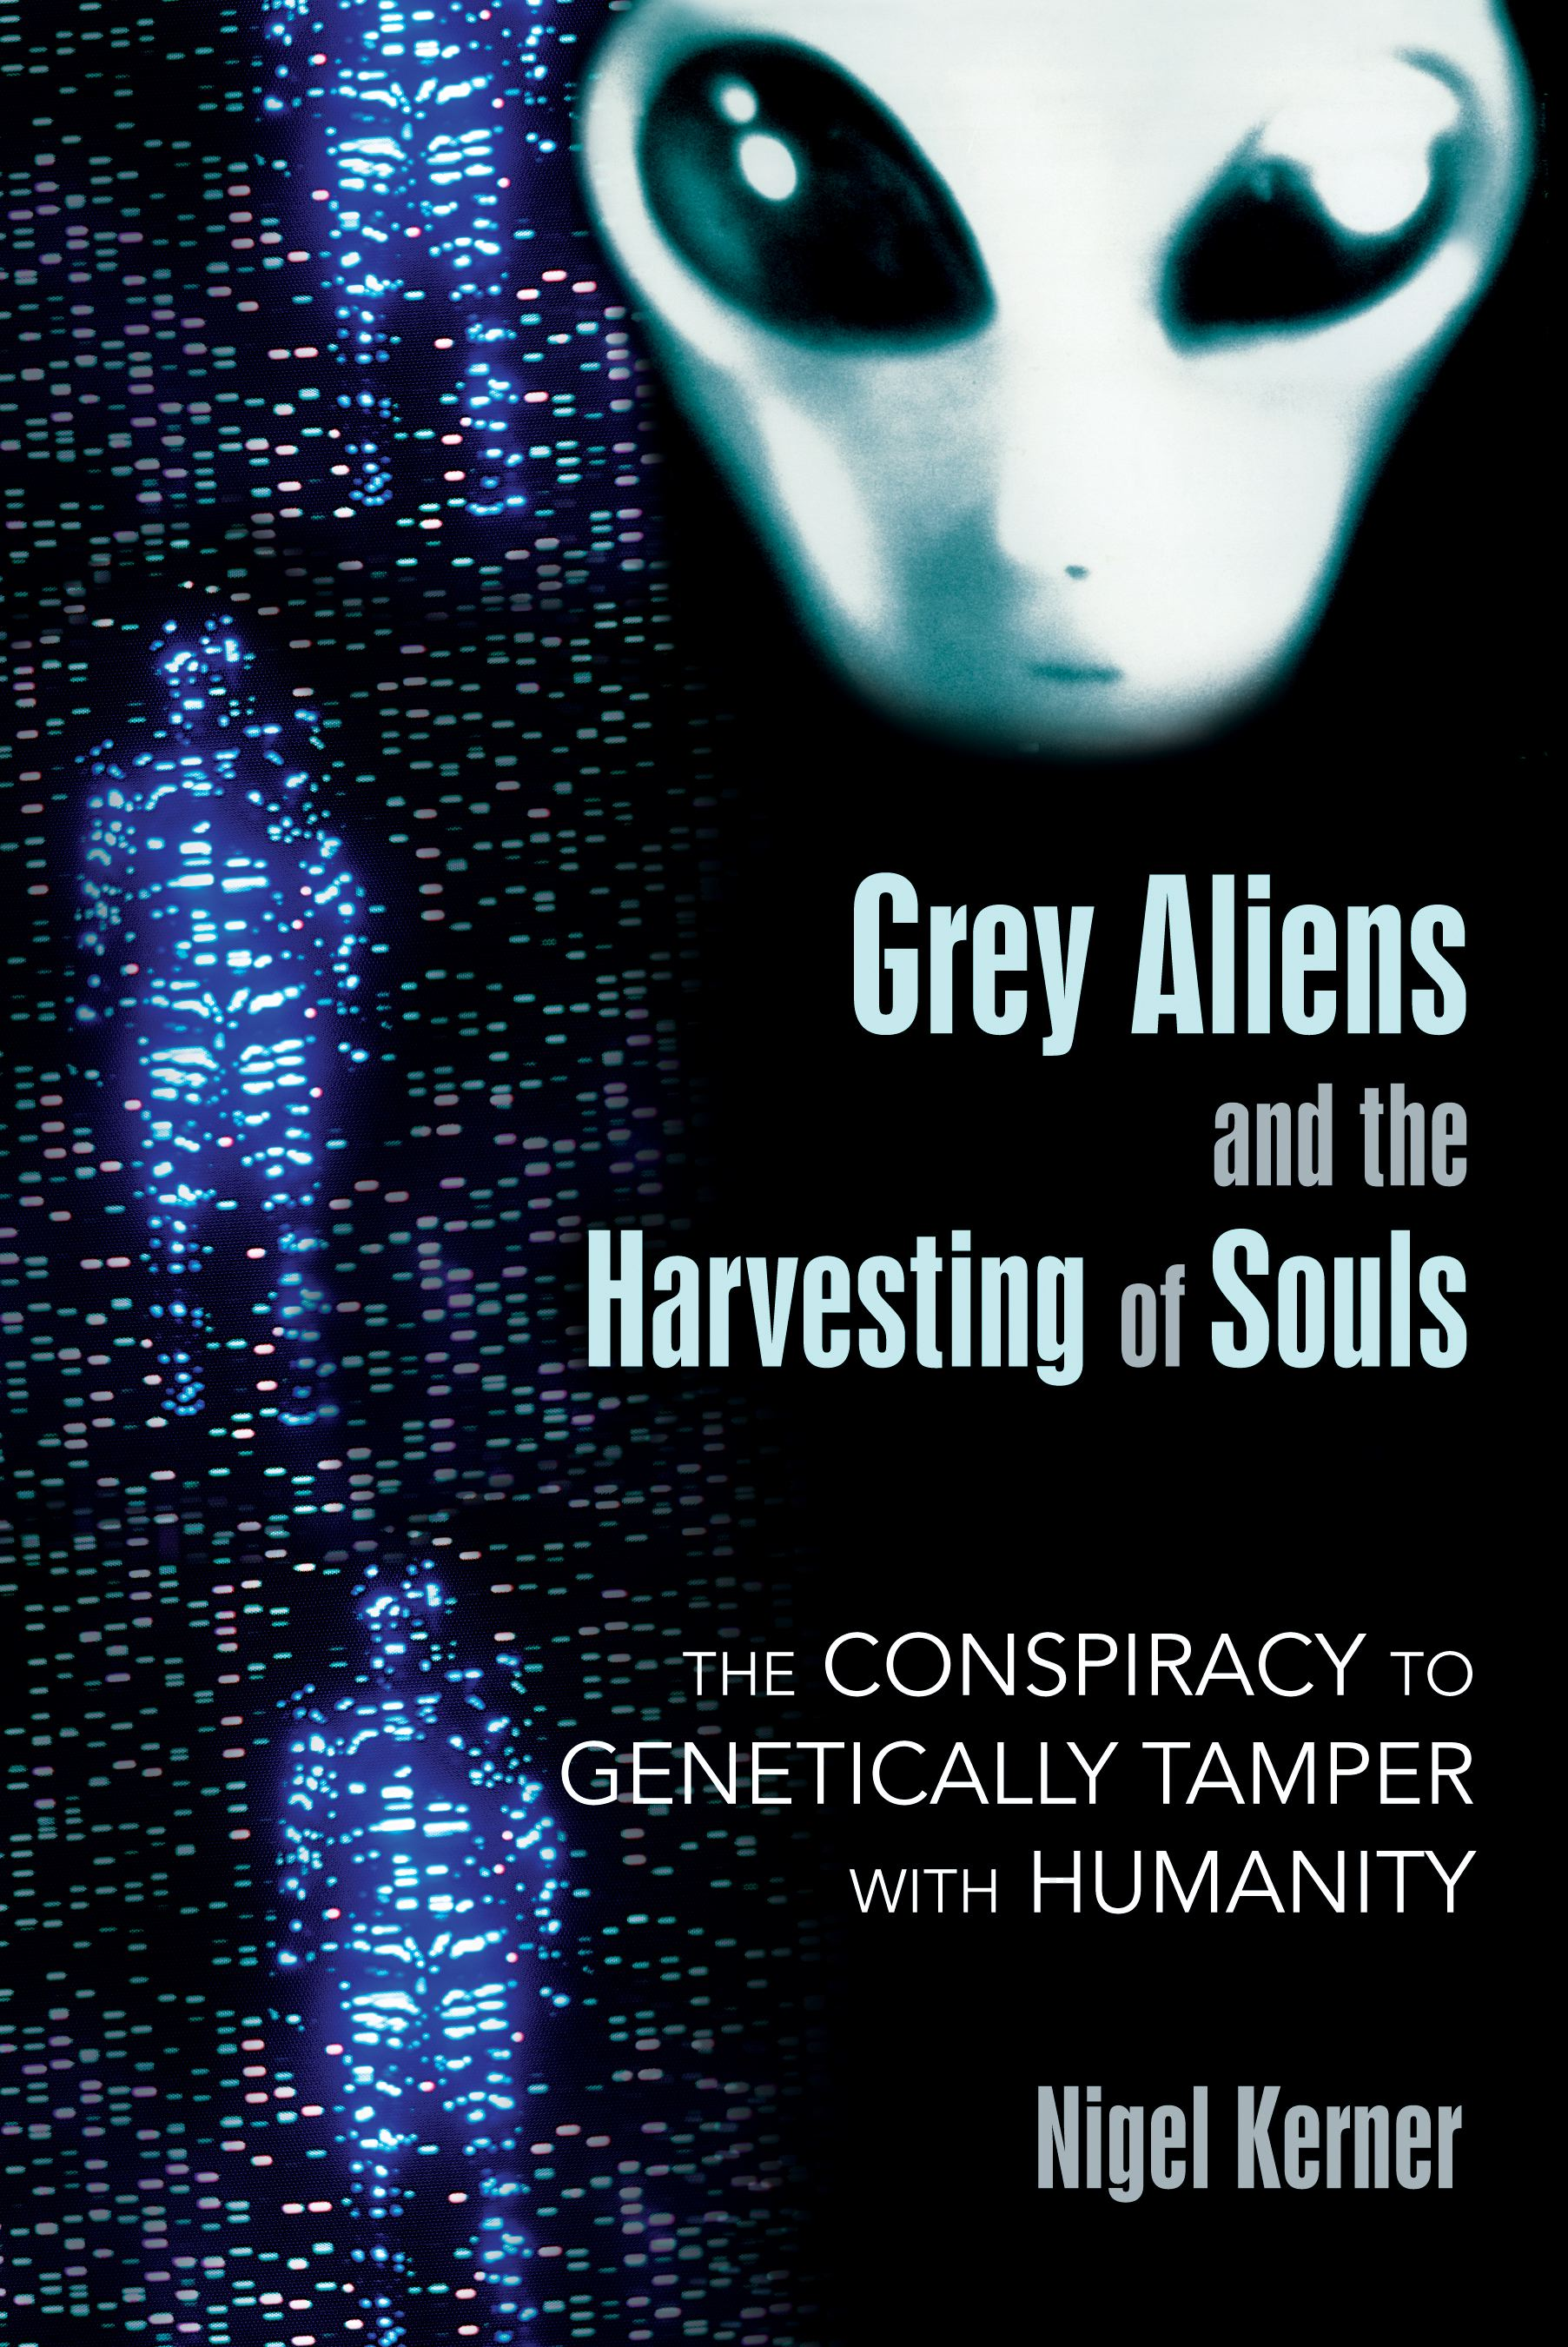 Grey aliens and the harvesting of souls 9781591431039 hr